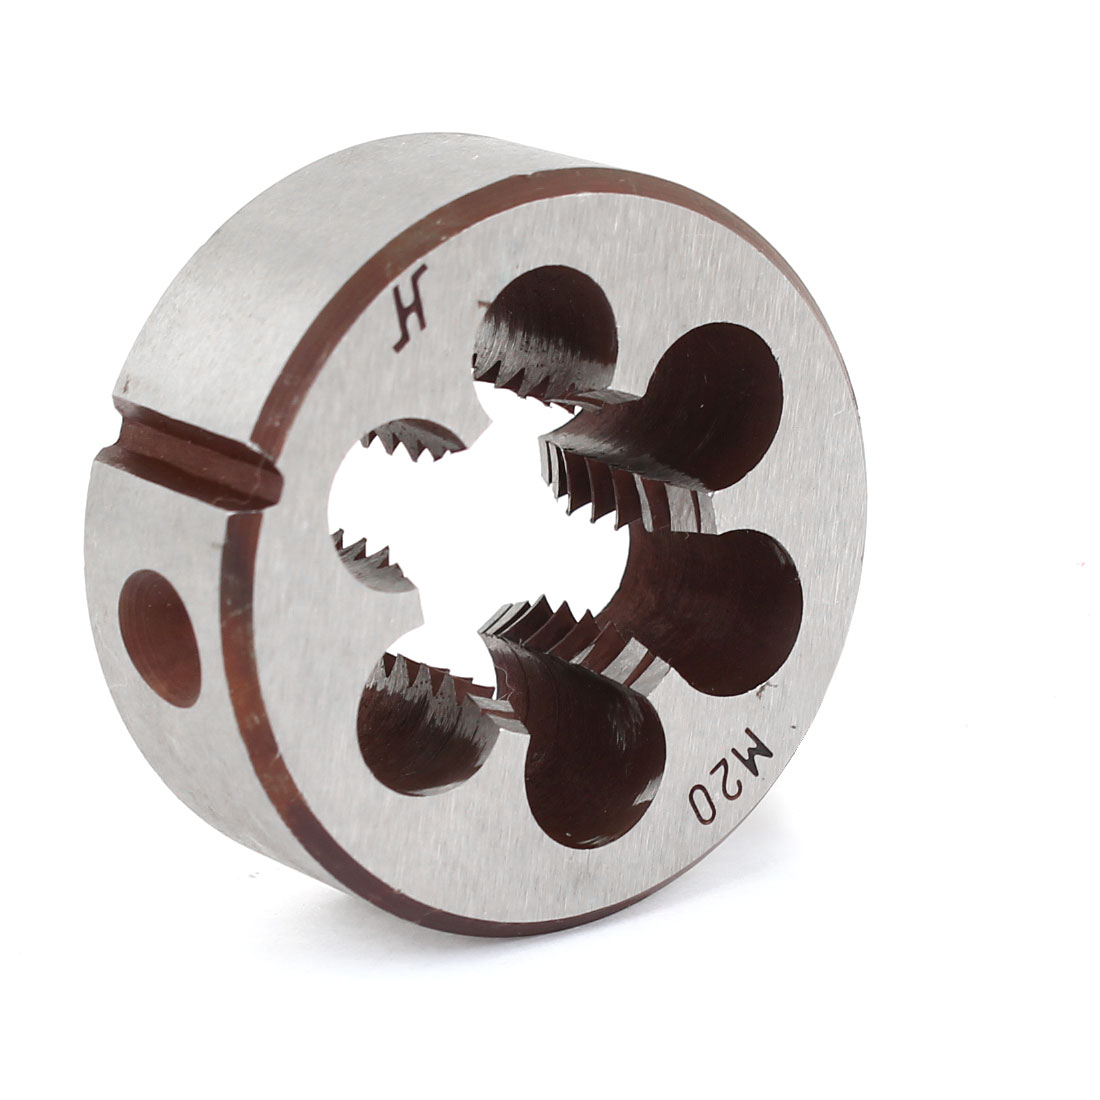 M20 45mm Outside Diameter Hand Machine Circular Screwing Die